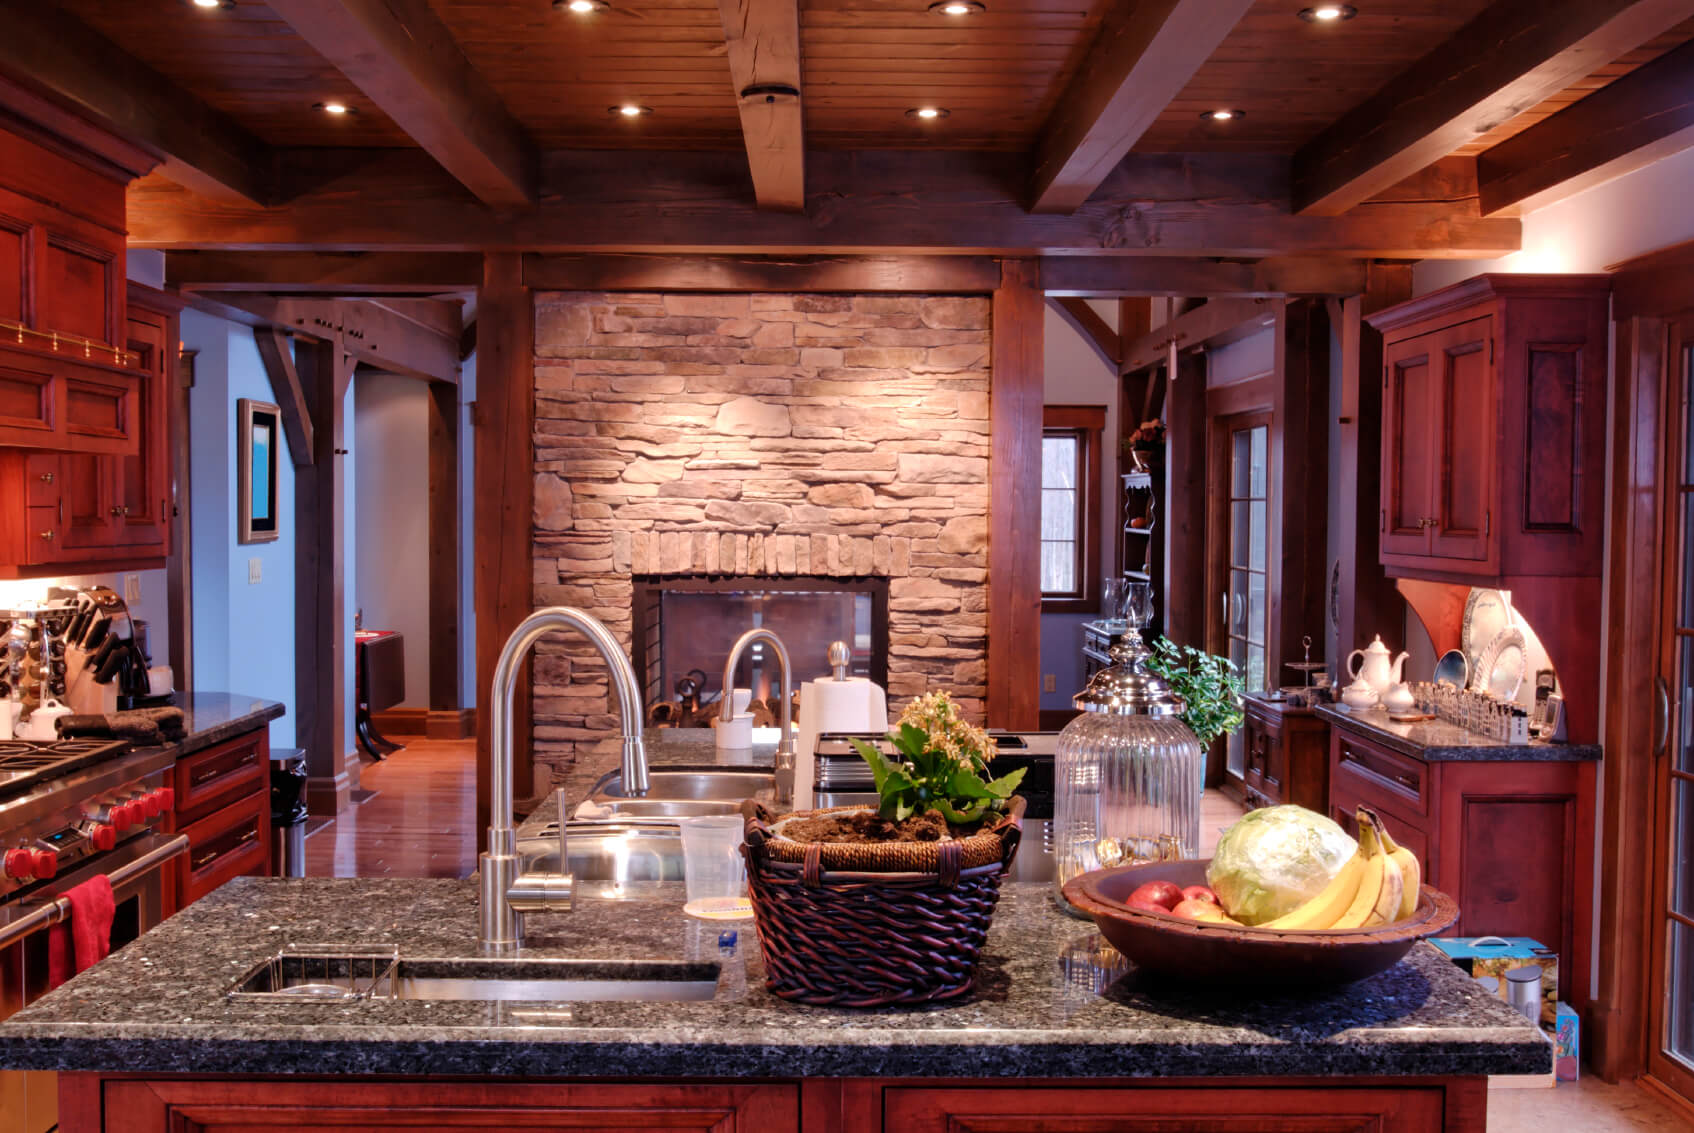 dark kitchen cabinets cherry wood cabinets kitchen Here we see the prior rustic look kitchen at night time with embedded light highlighting